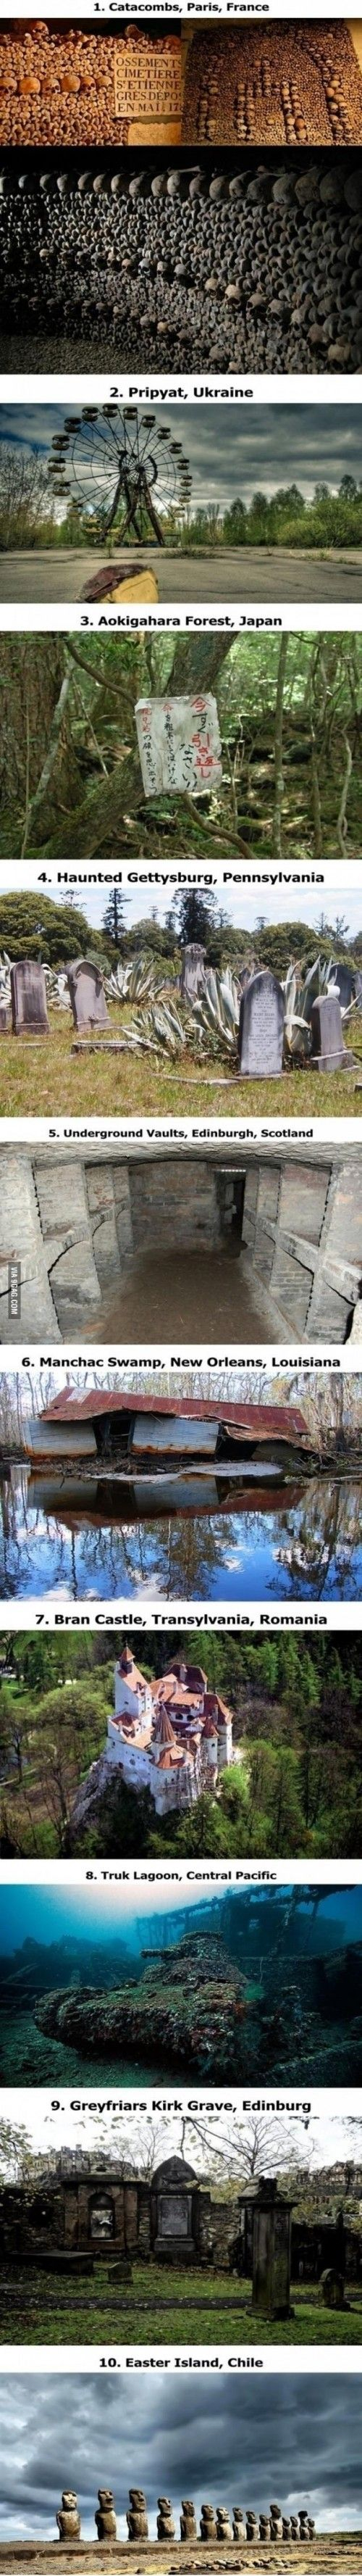 I don't know if I would go to all of these but I want to think I would be breve enough to try (10 scariest places in the world)